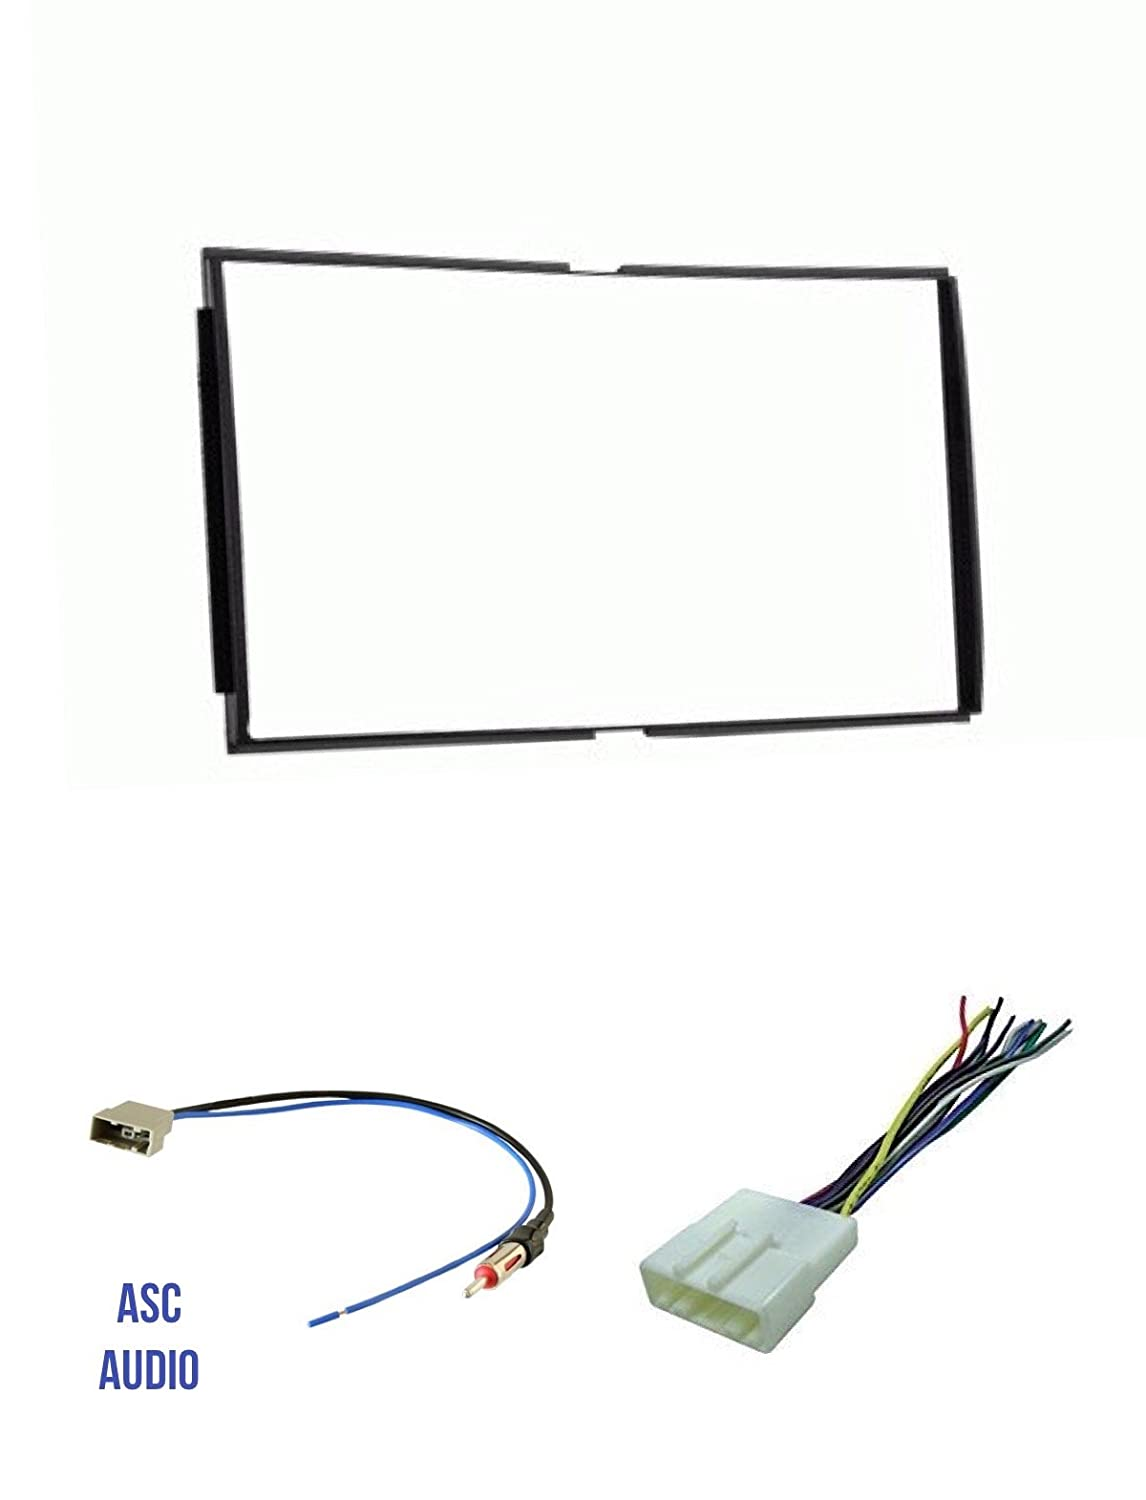 Wire Harness ASC Car Stereo Install Dash Kit without pocket door above radio and Antenna Adapter for installing a Double Din Aftermarket Radio for 2007 2008 2009 2010 2011 2012 Nissan Sentra